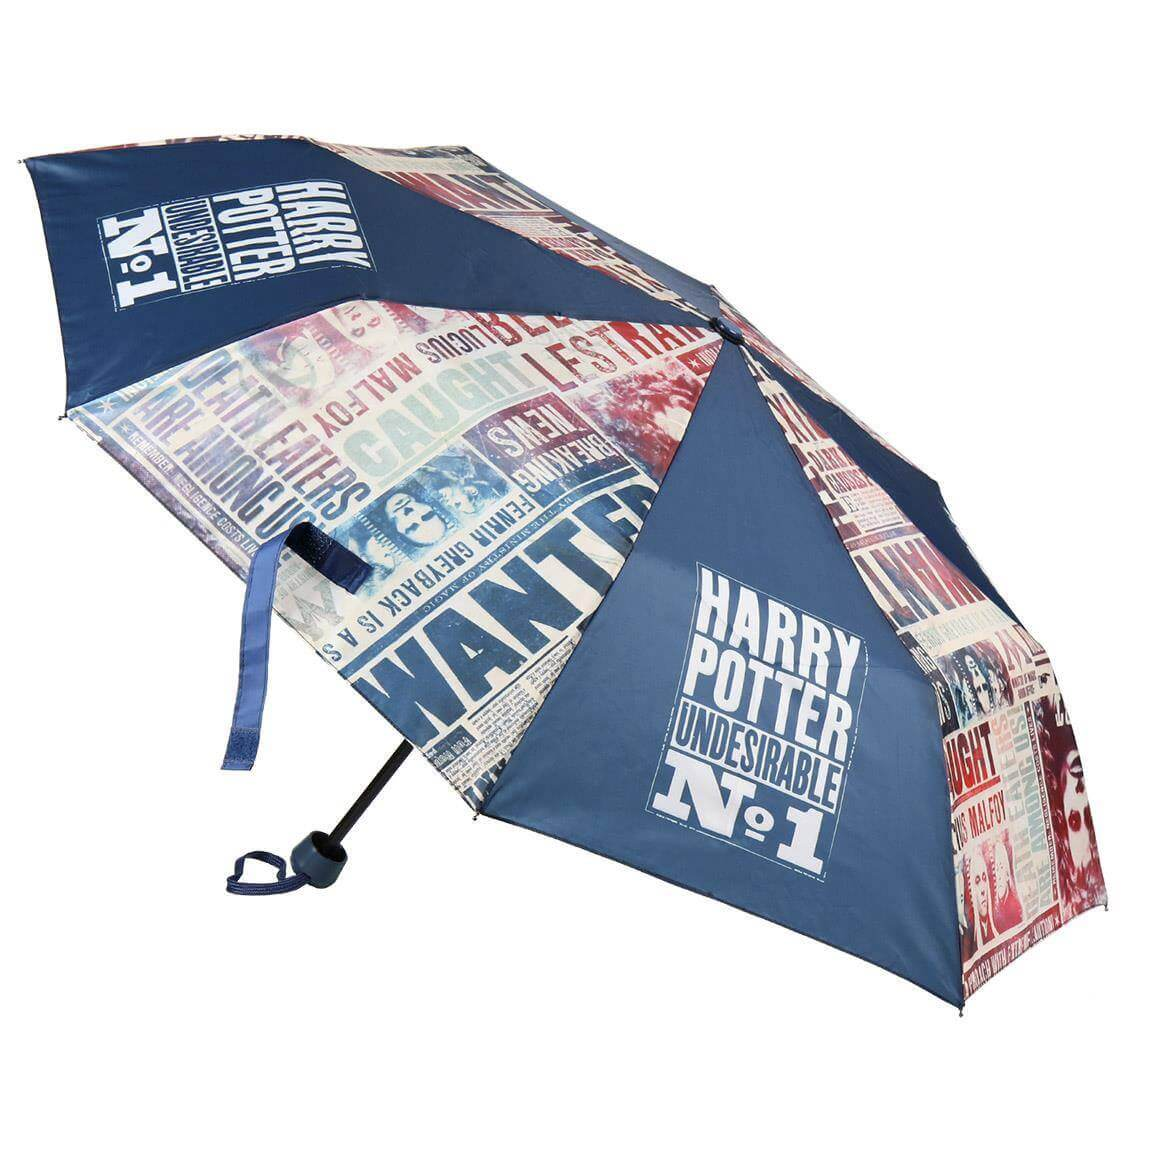 PARAPLUIE UNDESIRABLE N°1 - HARRY POTTER